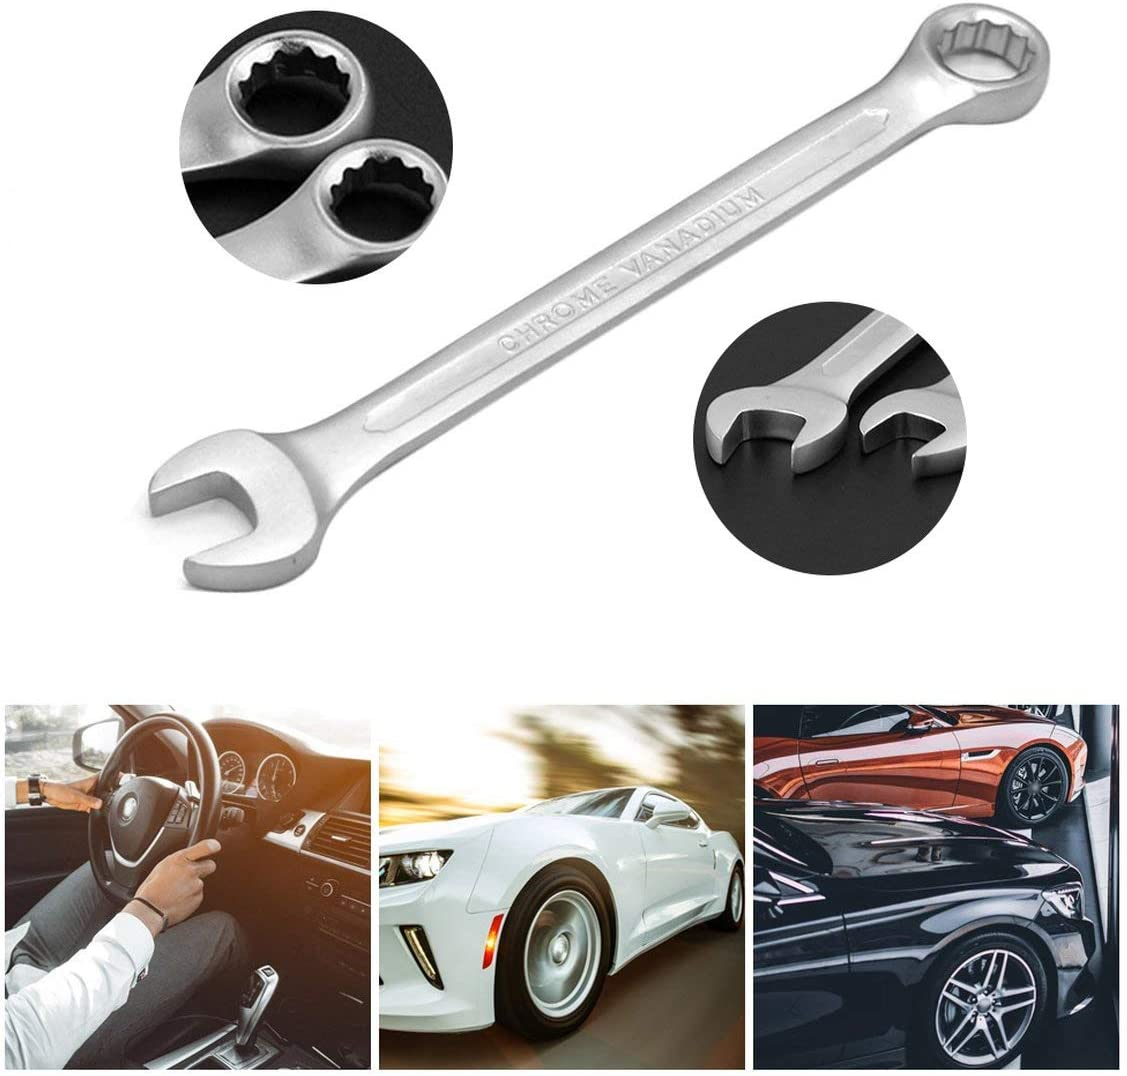 Flexible 6mm-32mm Double Head Spanner Combination Wrench Set of Keys Skate Tool Gear Ring Wrench Repairing Tool